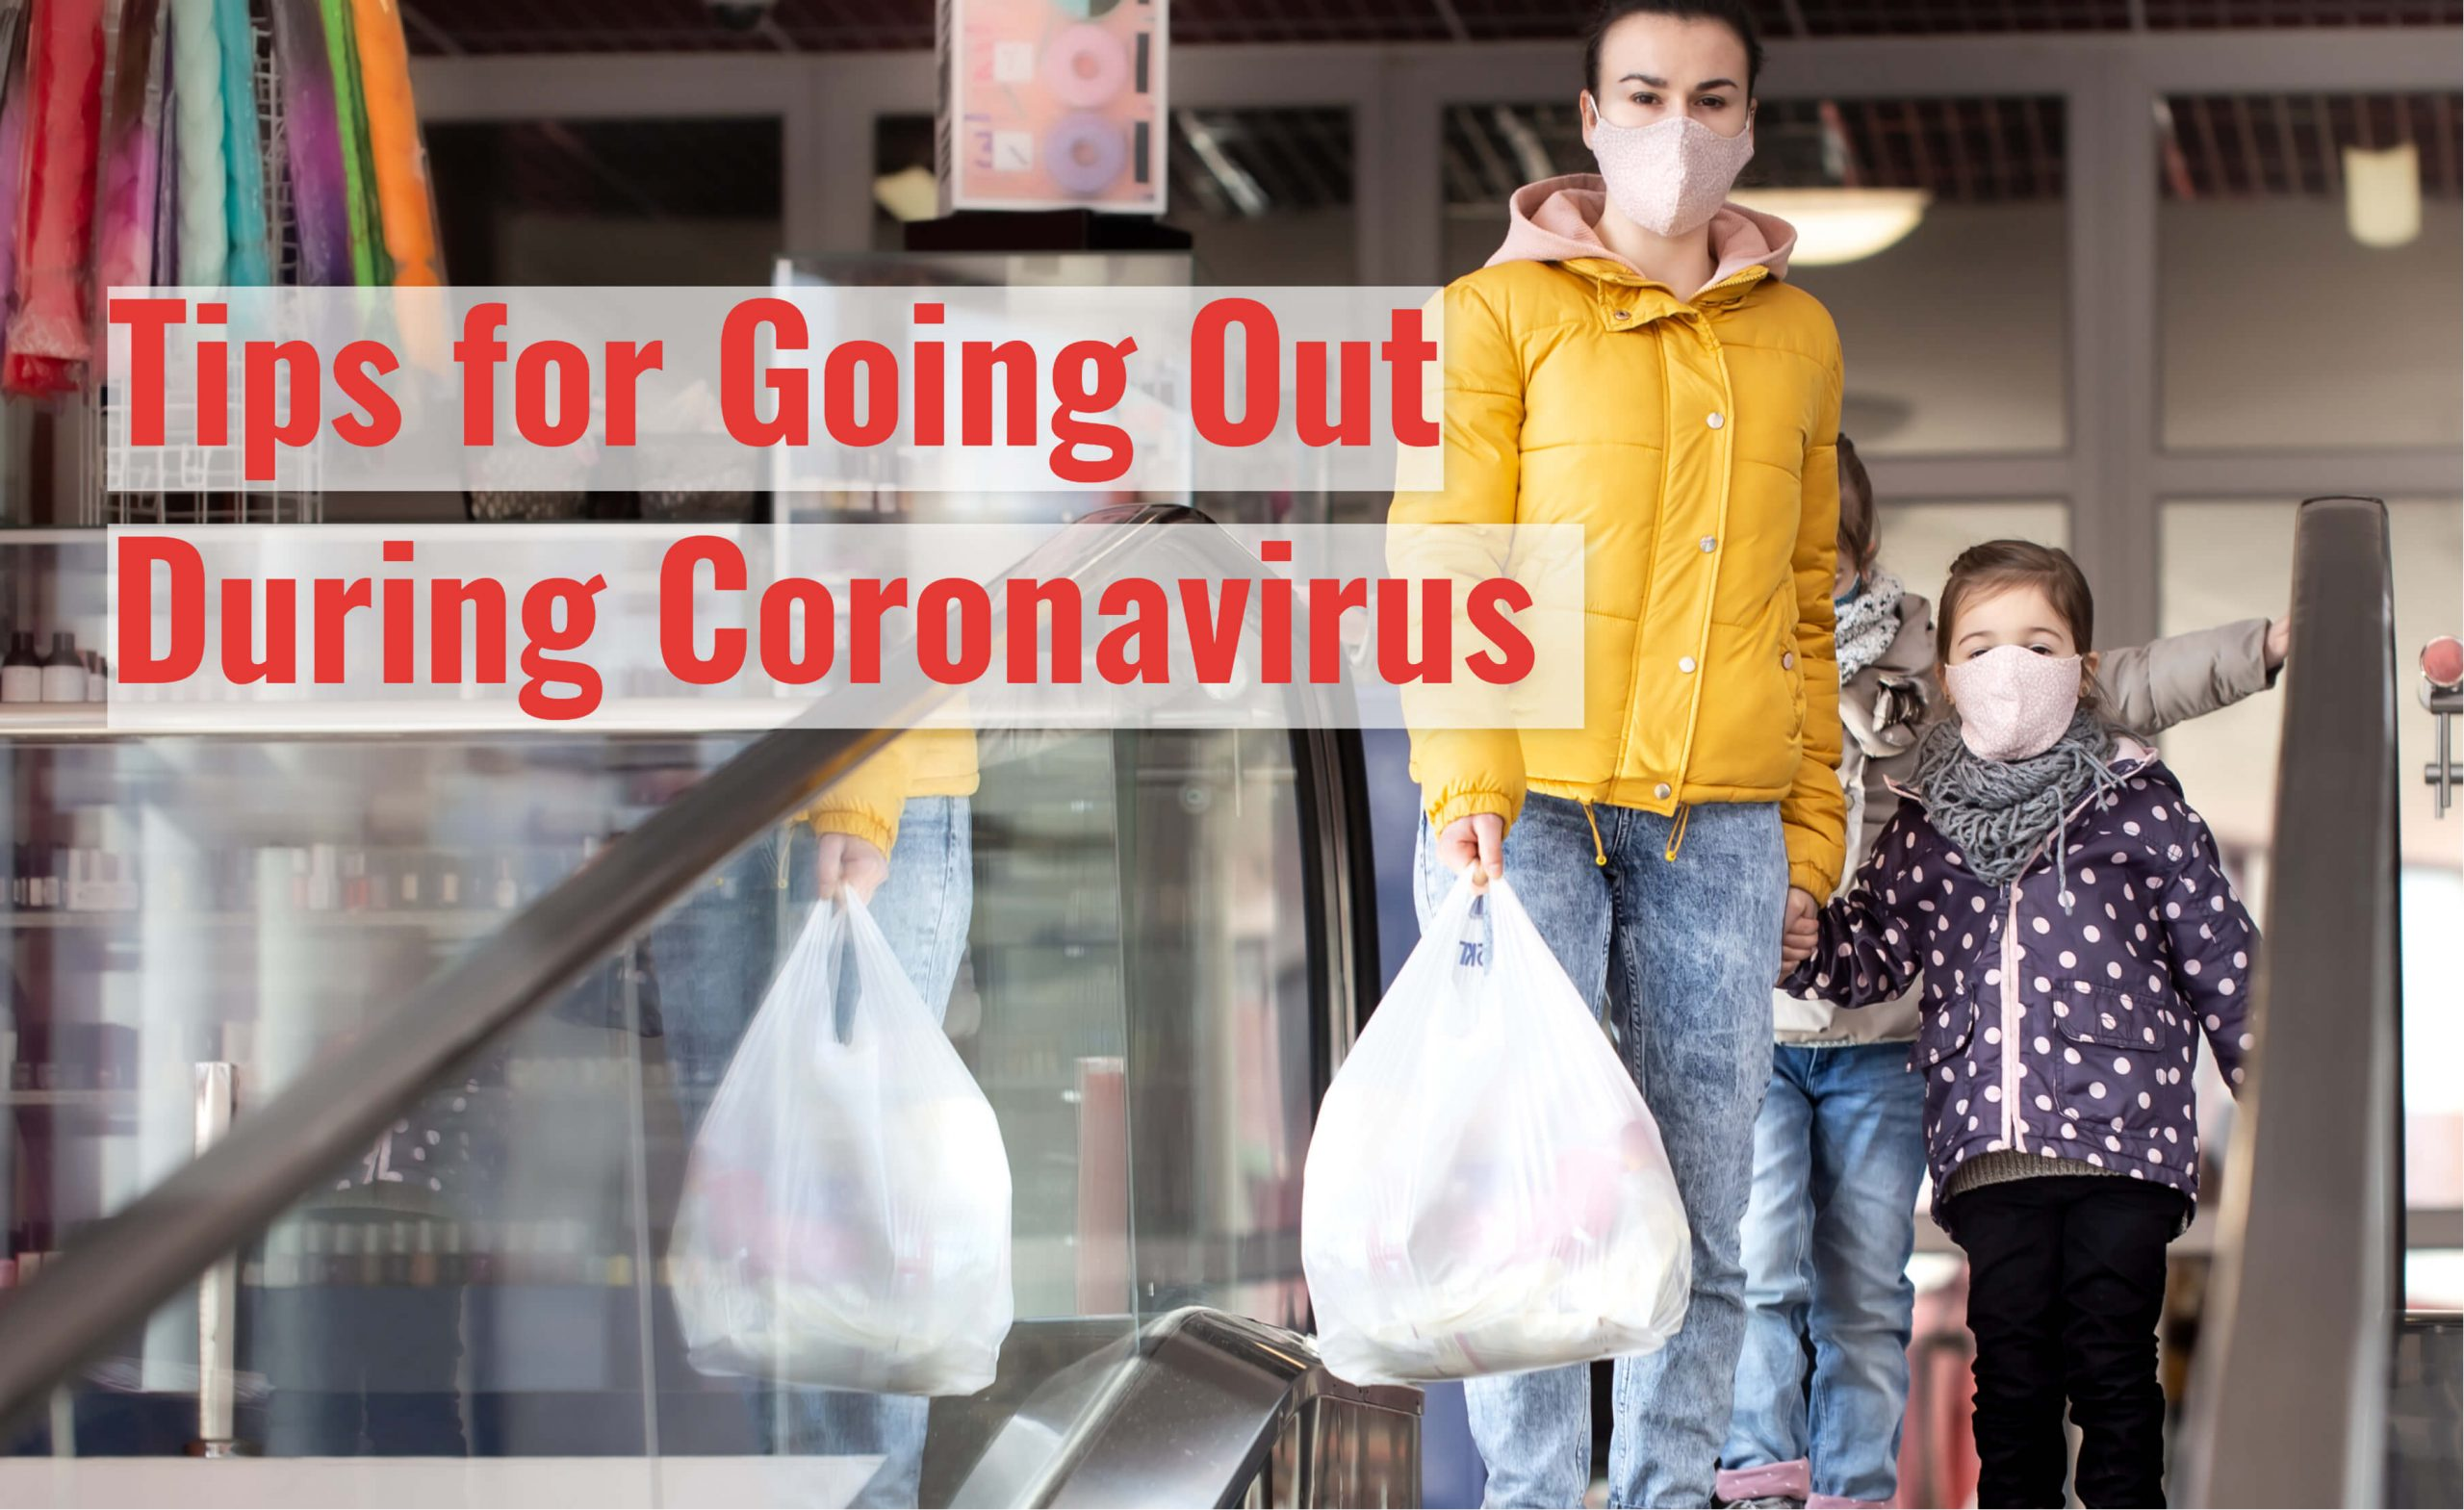 Tips for going out during coronavirus